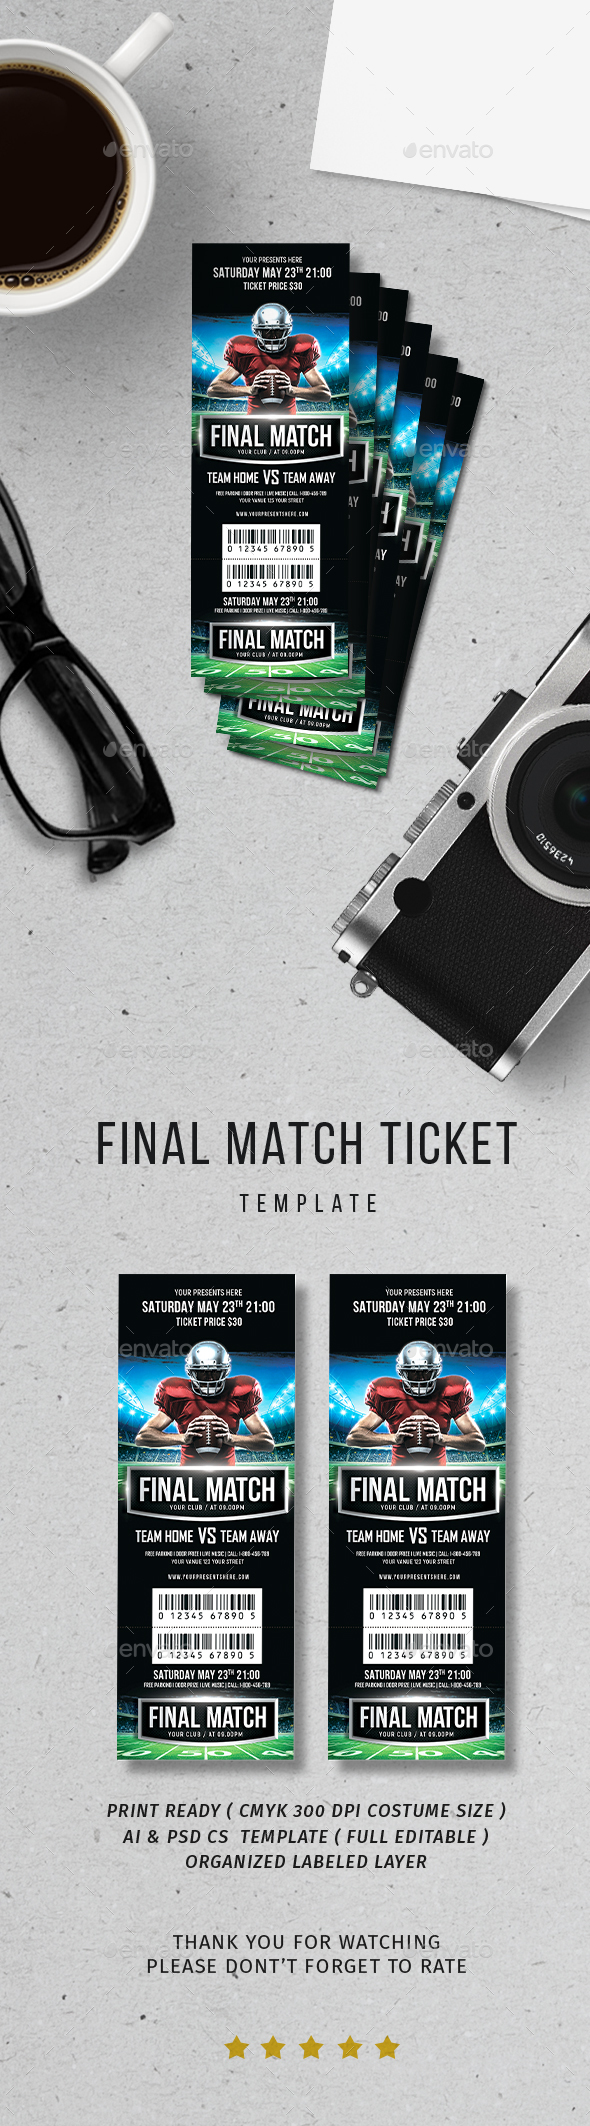 Final Match Ticket - Print Templates